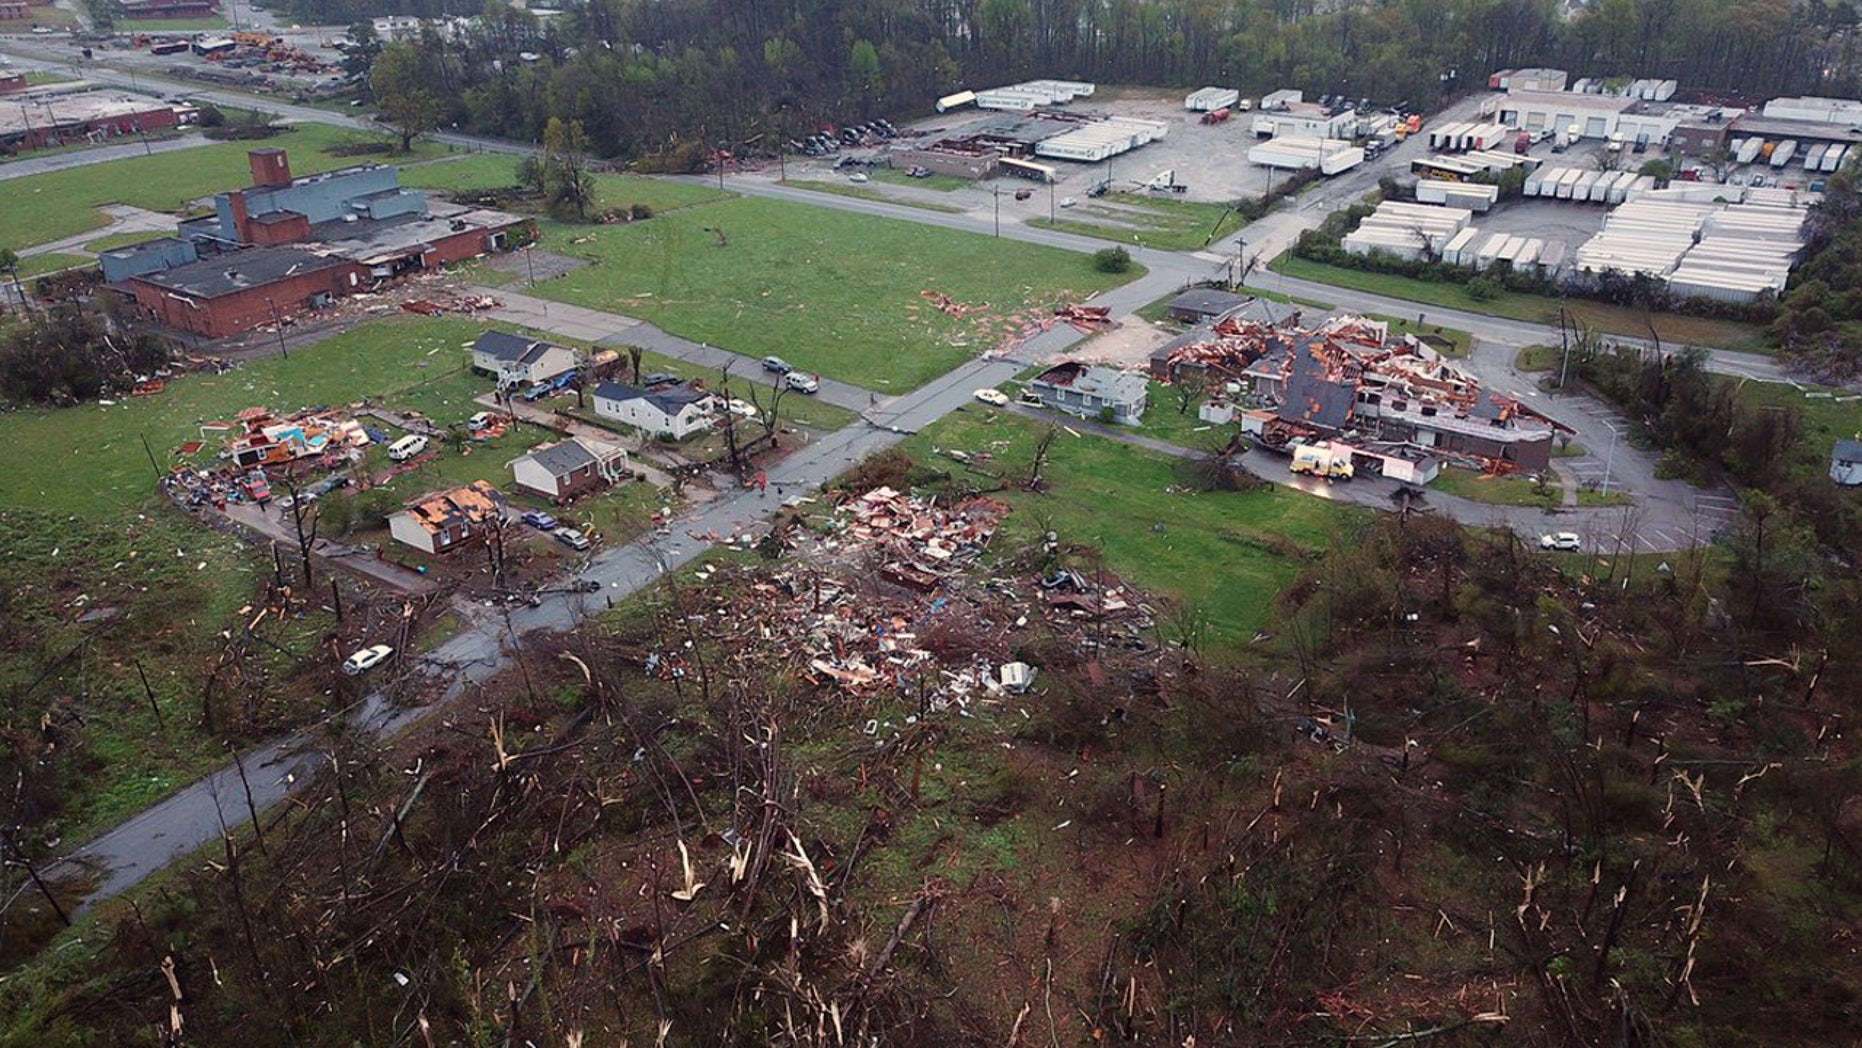 Tornado damage in Greensboro, N.C. is seen in this aerial view Sunday.